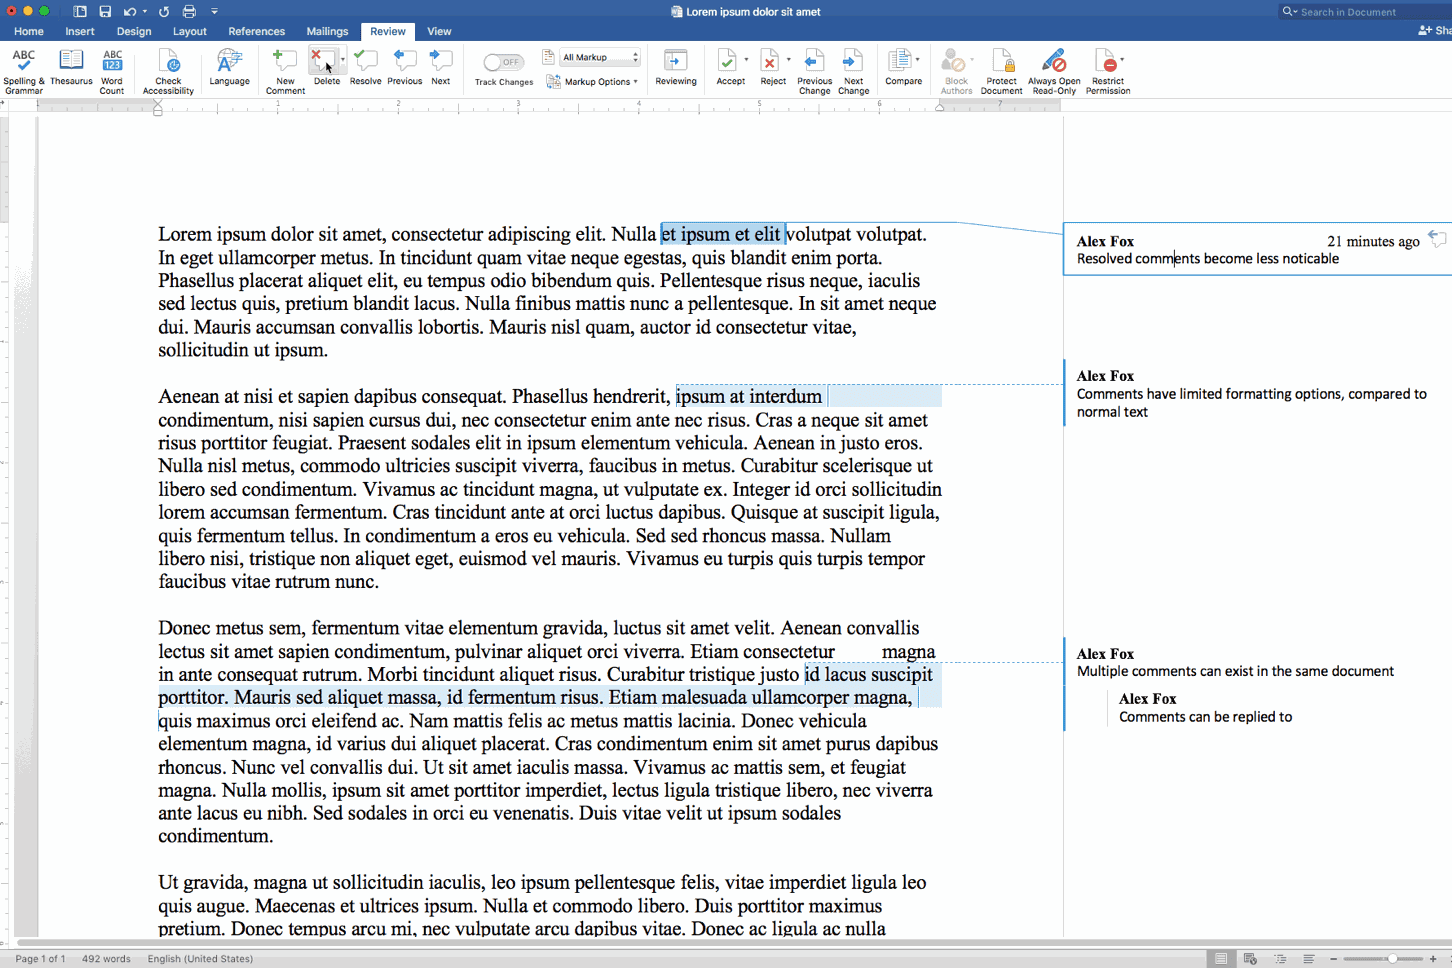 How To Delete Comments In Word